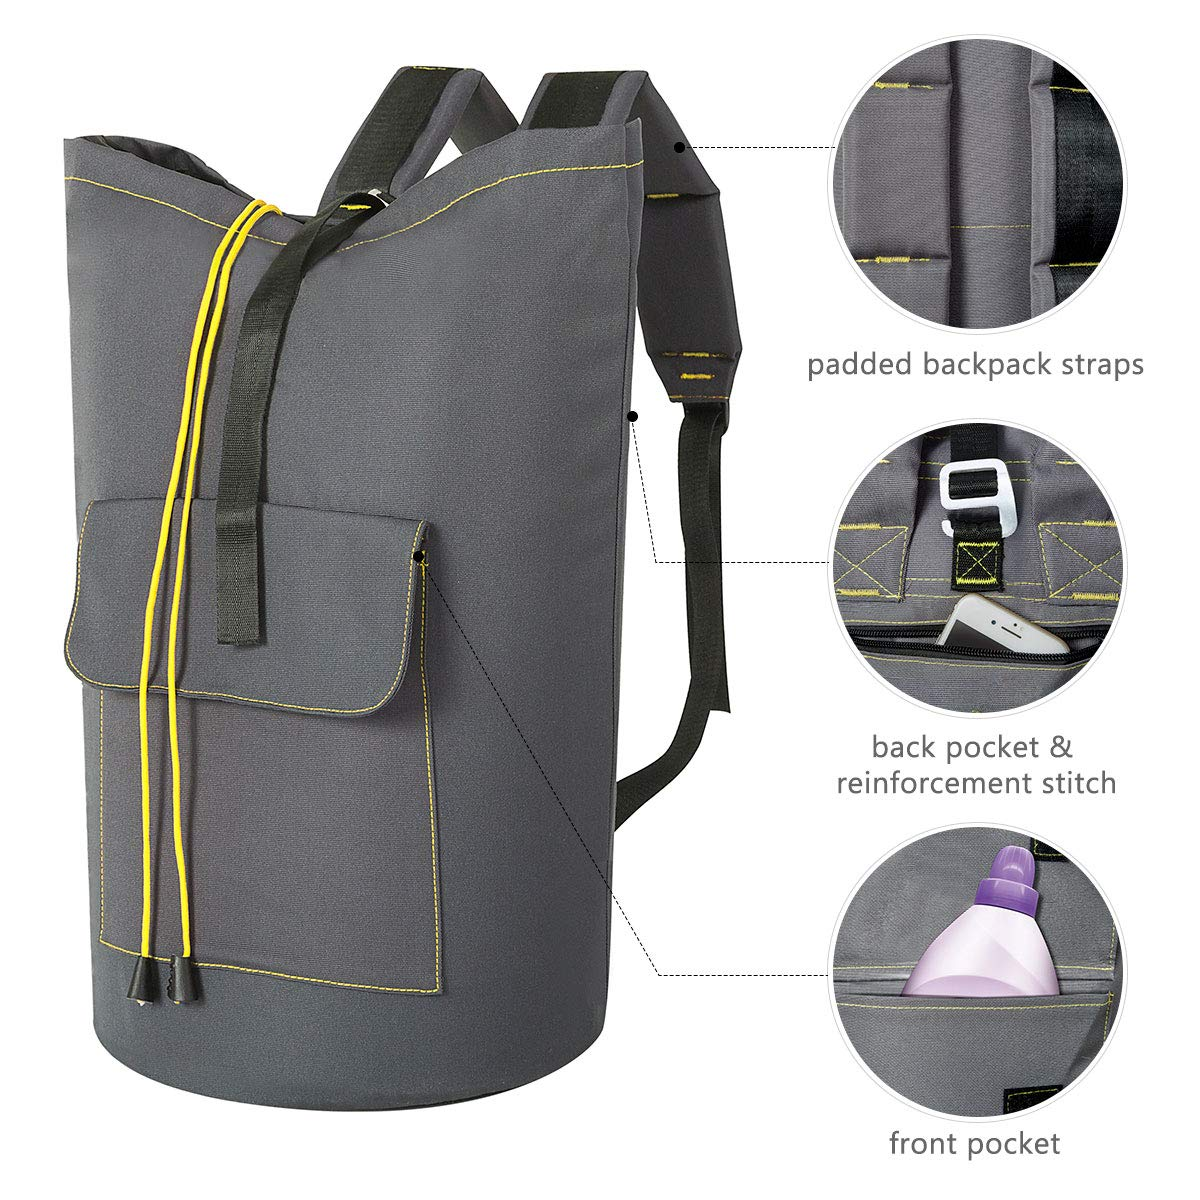 WOWLIVE Large Laundry Bag Laundry Backpack Hanging Laundry Hamper Adjustable Shoulder Straps Camping Bag Waterproof Durable Travel Collage Apartment Dorm Sports (Expandable to 30\'\',Grey)